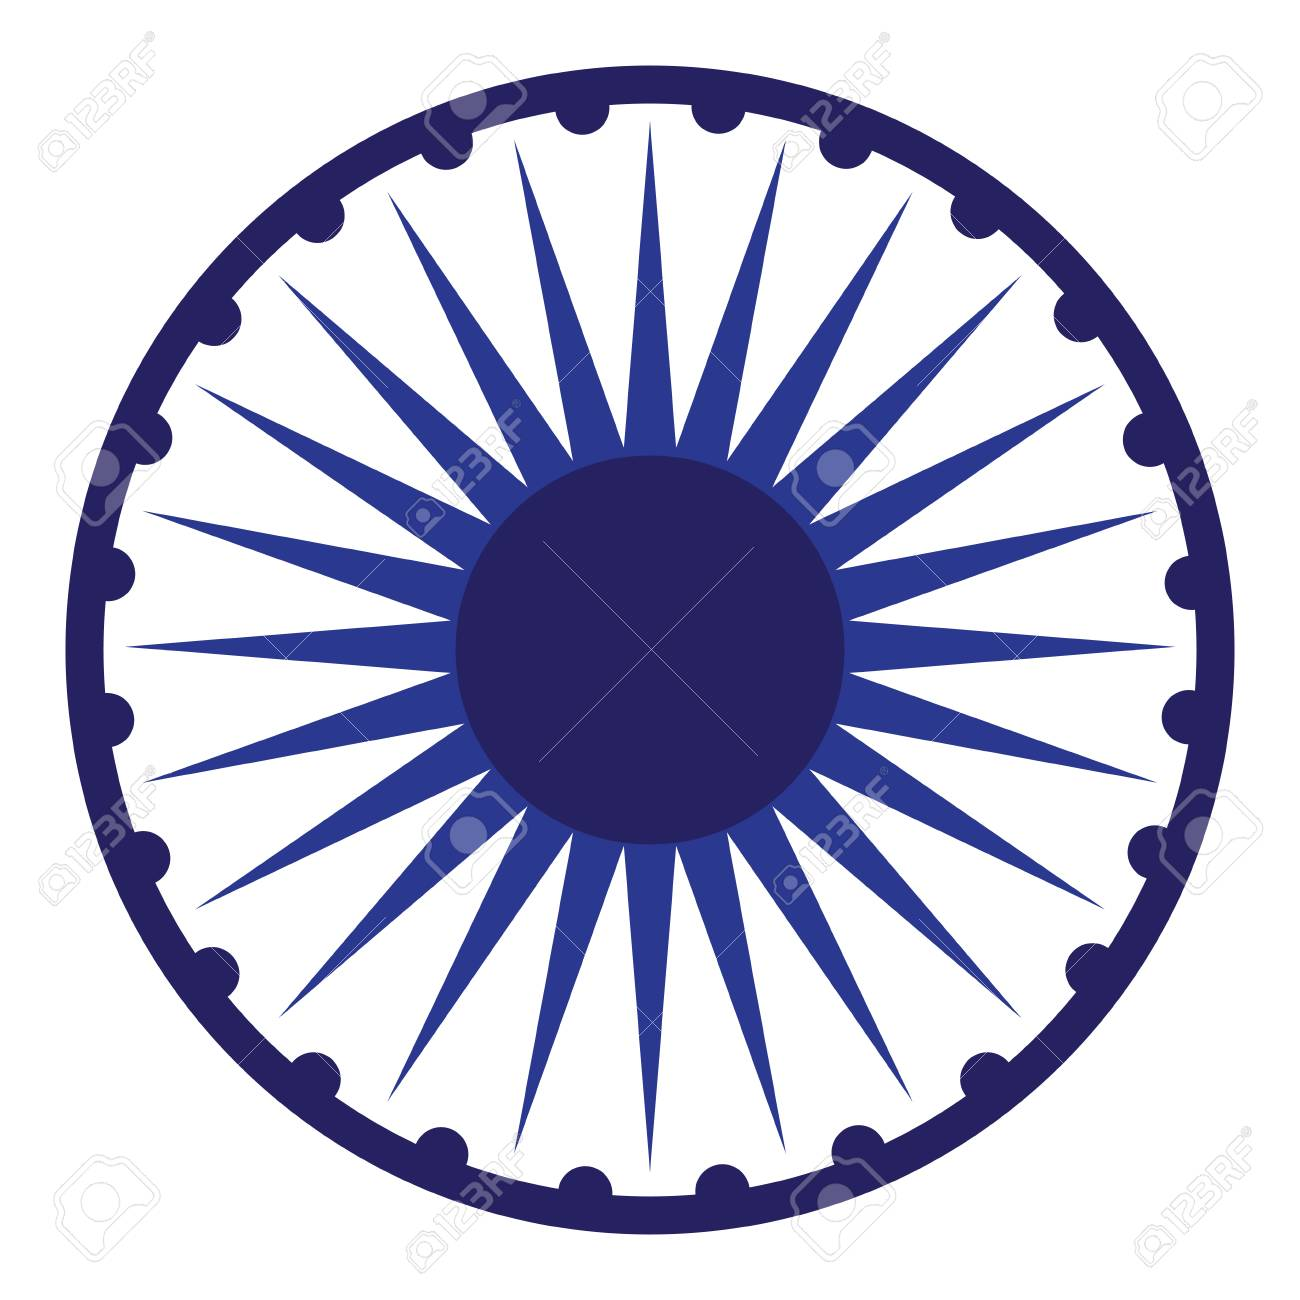 Isolated Chakra Symbol From The Indian Flag, Vector Illustration Royalty Free Cliparts, Vectors, And Stock Illustration. Image 79876319.